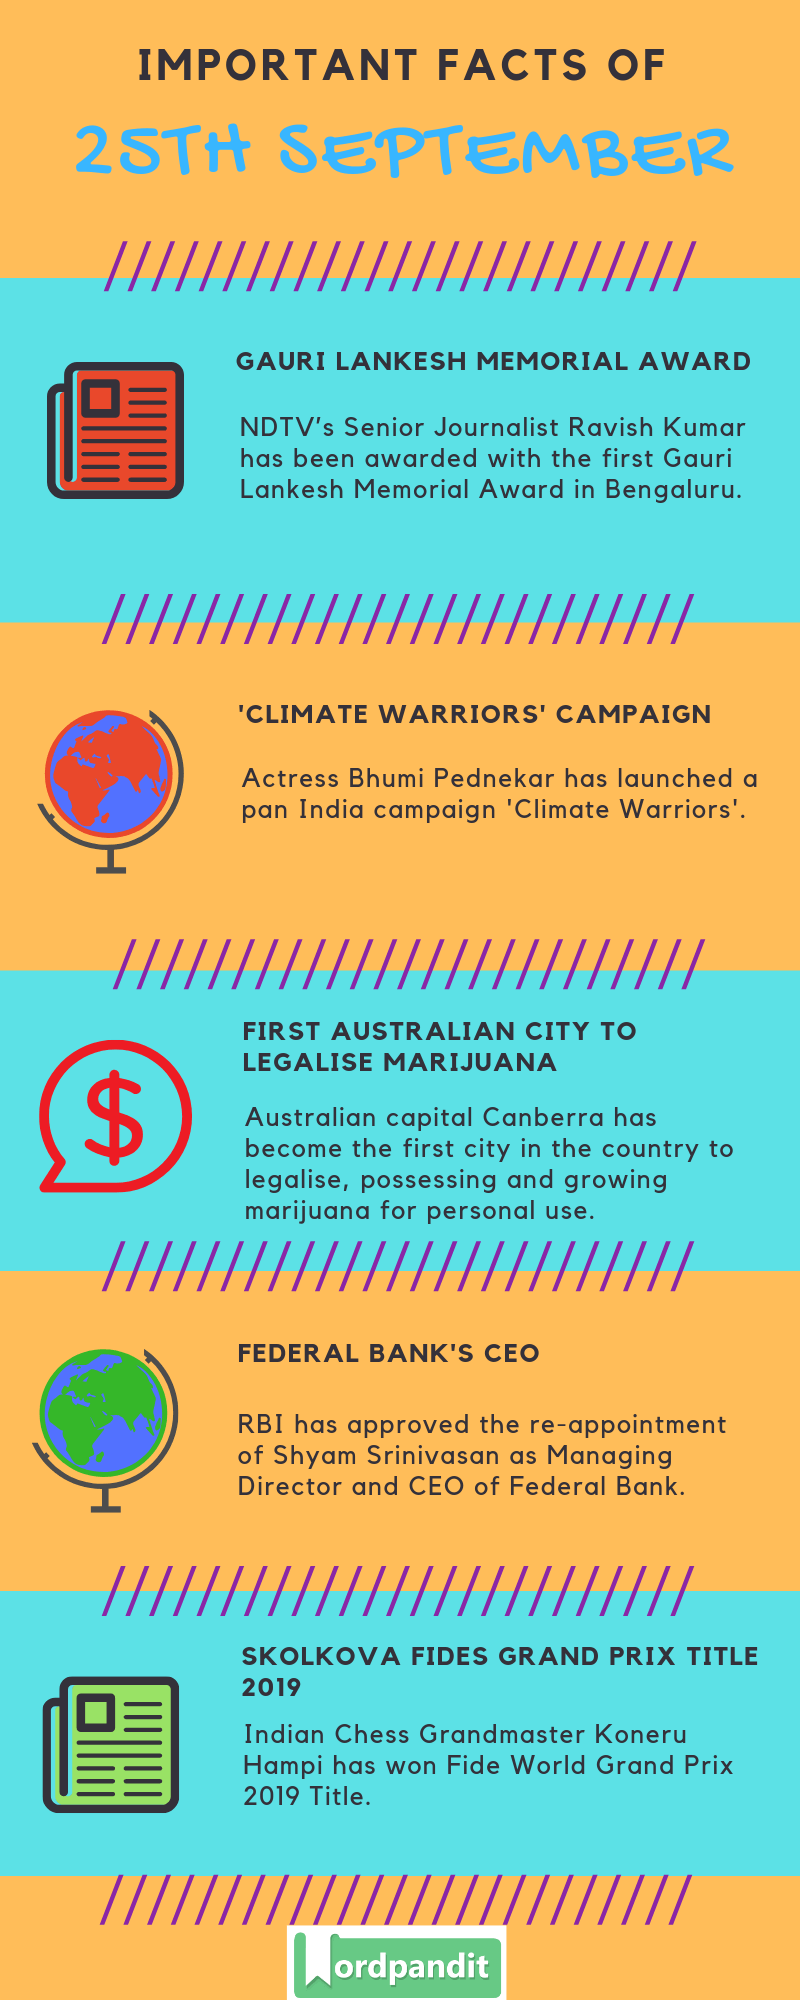 Daily Current Affairs 25 September 2019 Current Affairs Quiz 25 September 2019 Current Affairs Infographic